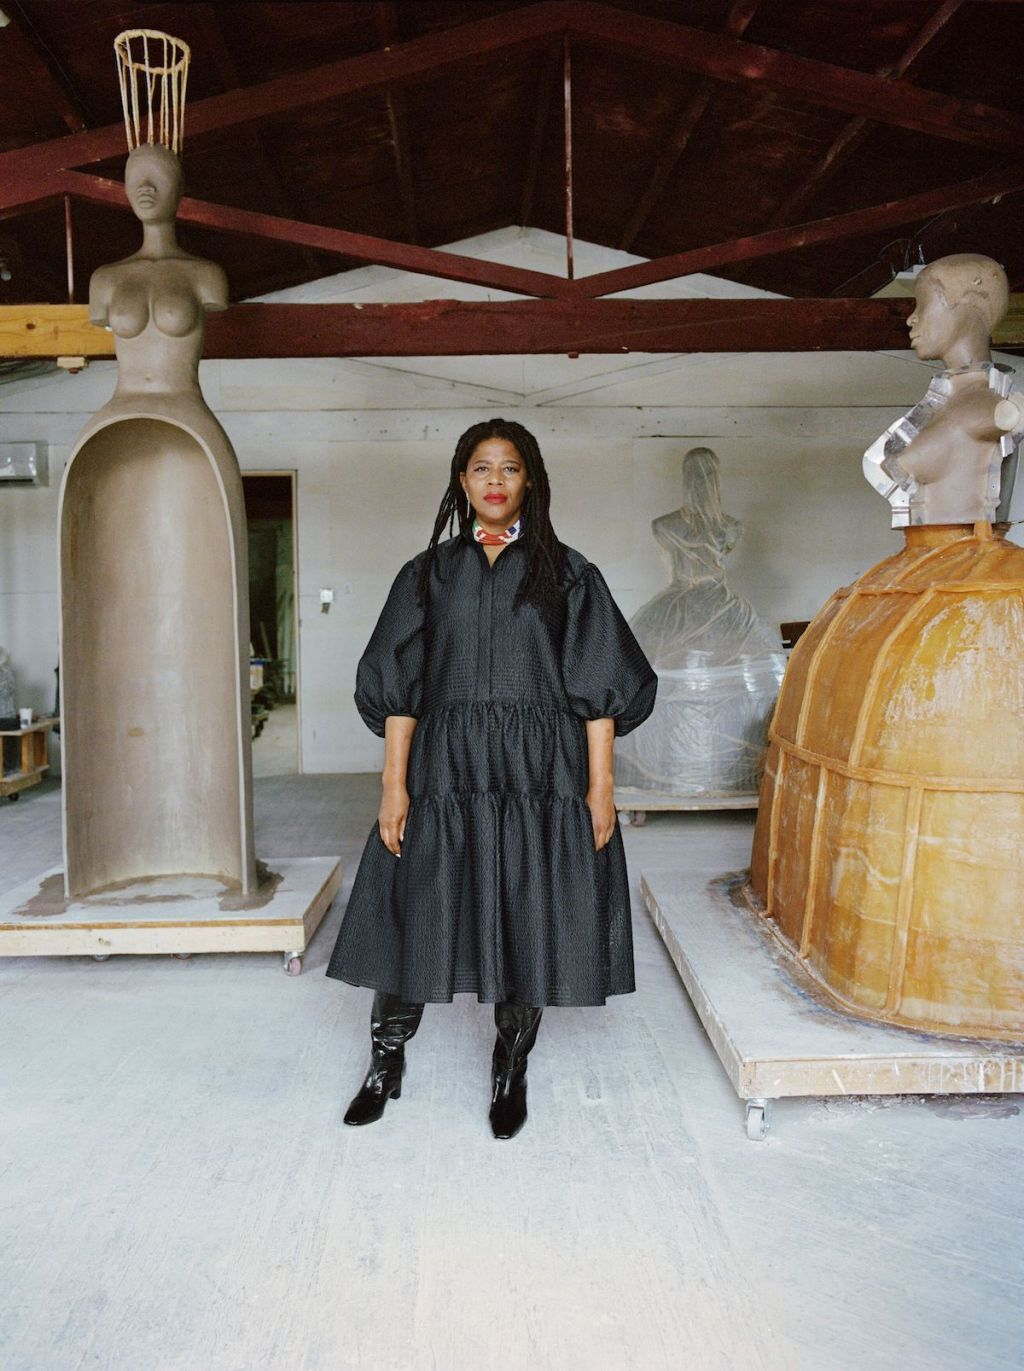 Sculptor Simone Leigh Picked to Represent United States at 2022 Venice Biennale